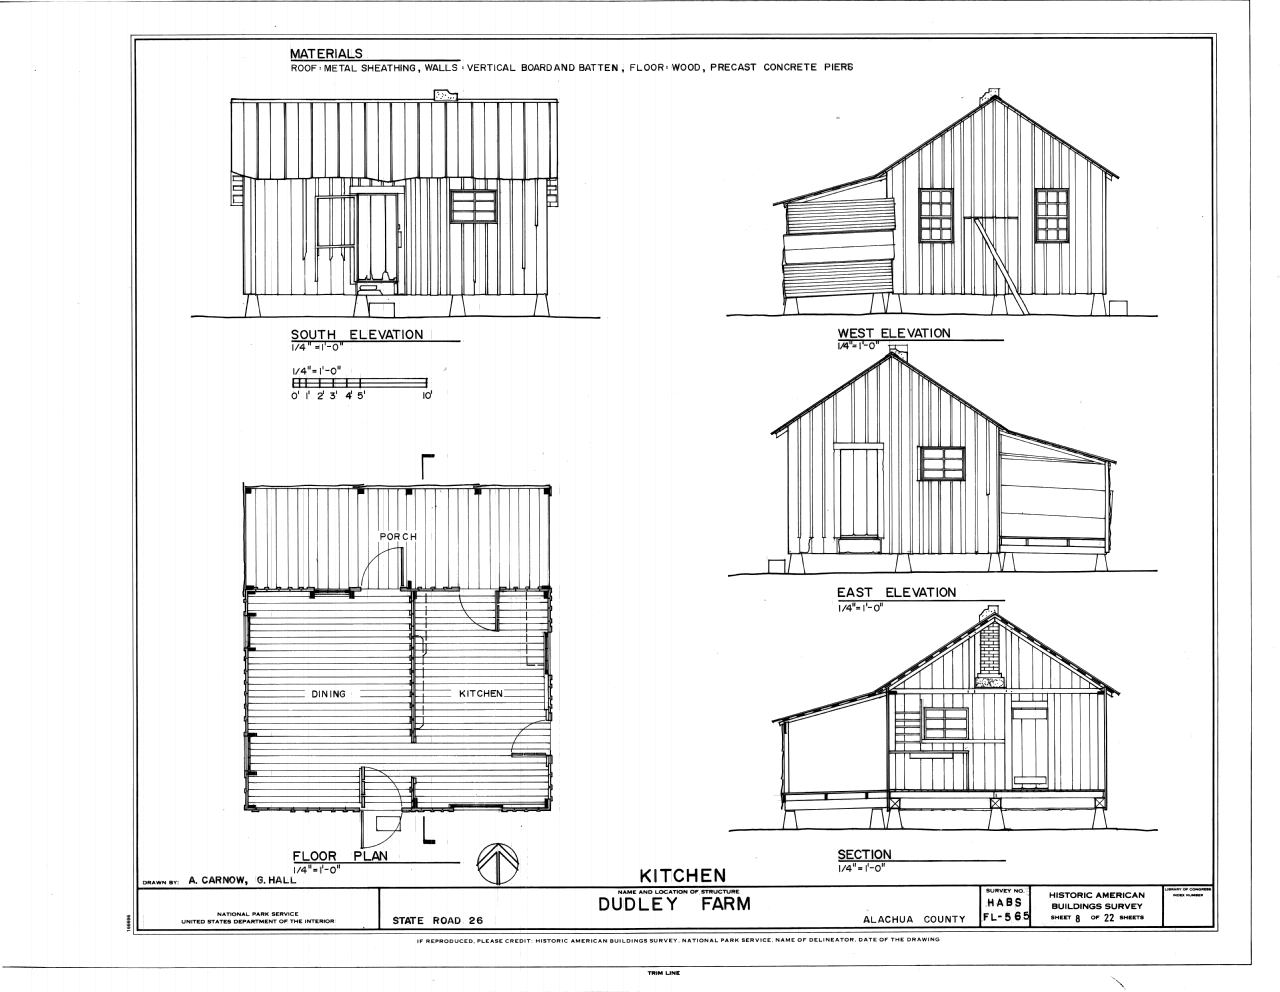 Elevation Plan House : File kitchen elevations floor plan and section dudley